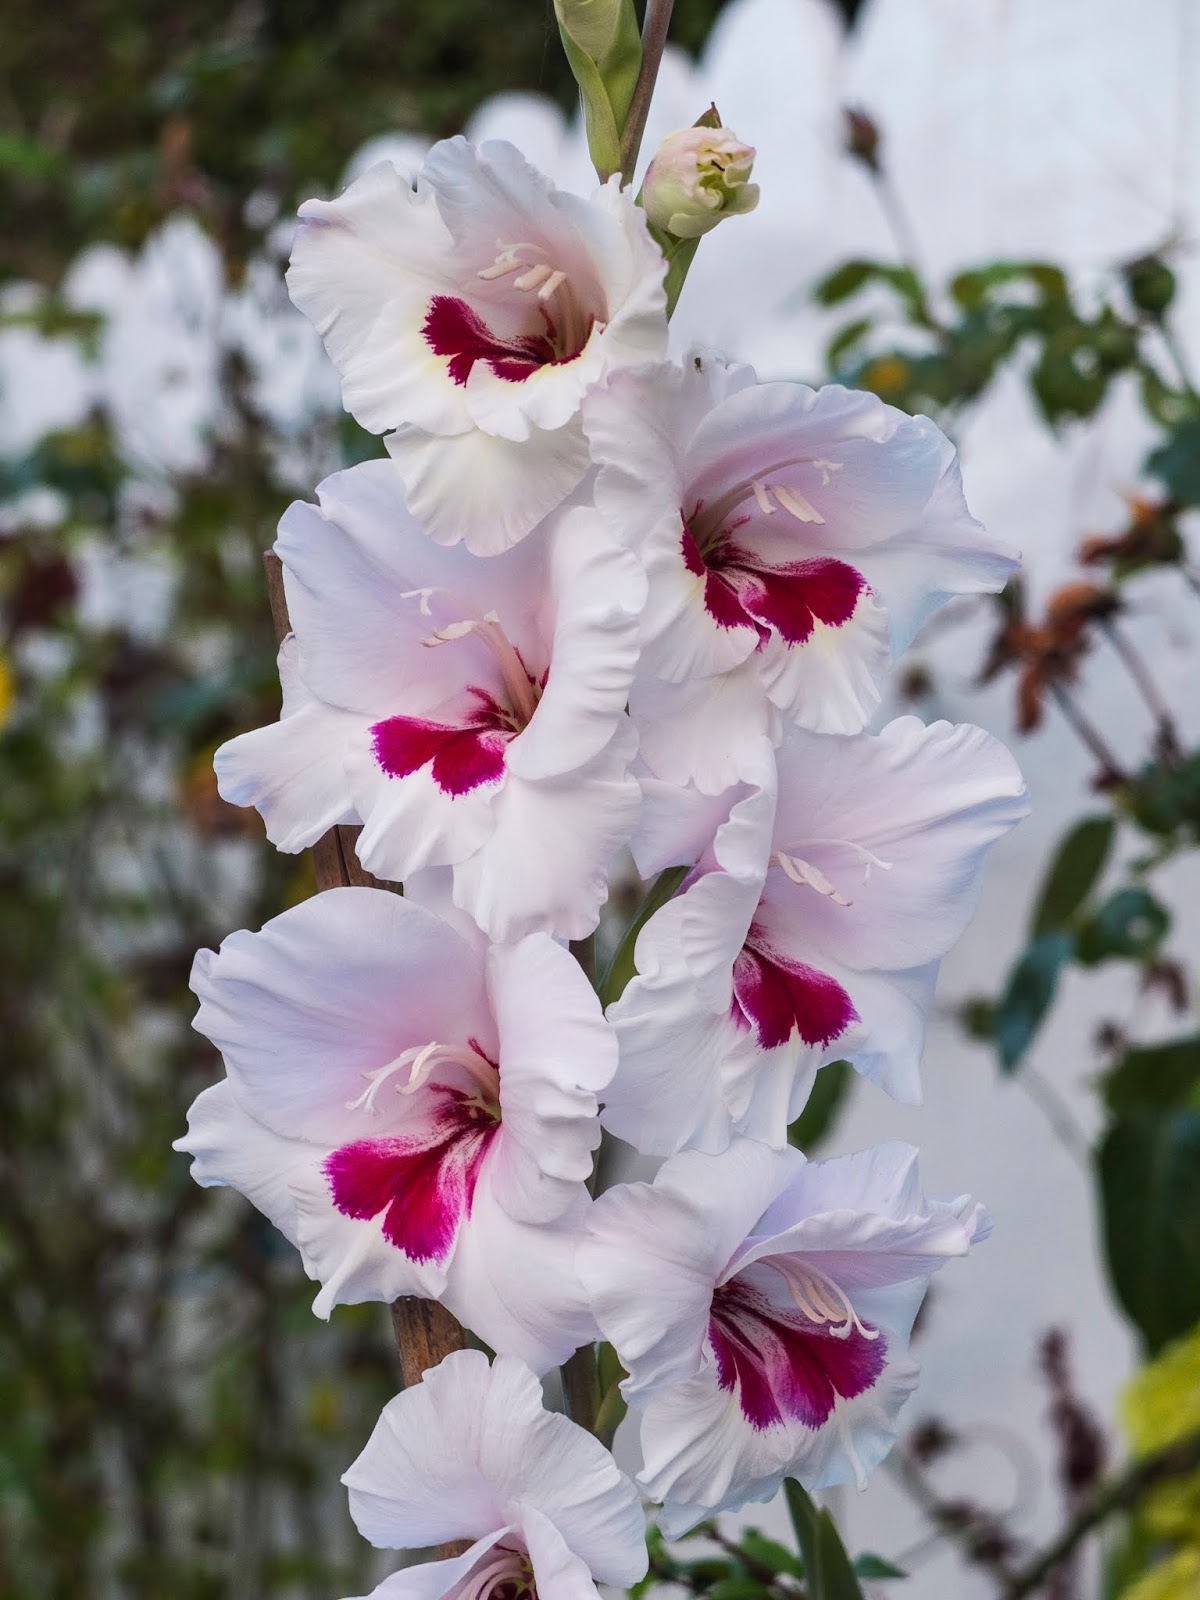 A close up of a white Gladiolus flowers with red centres.